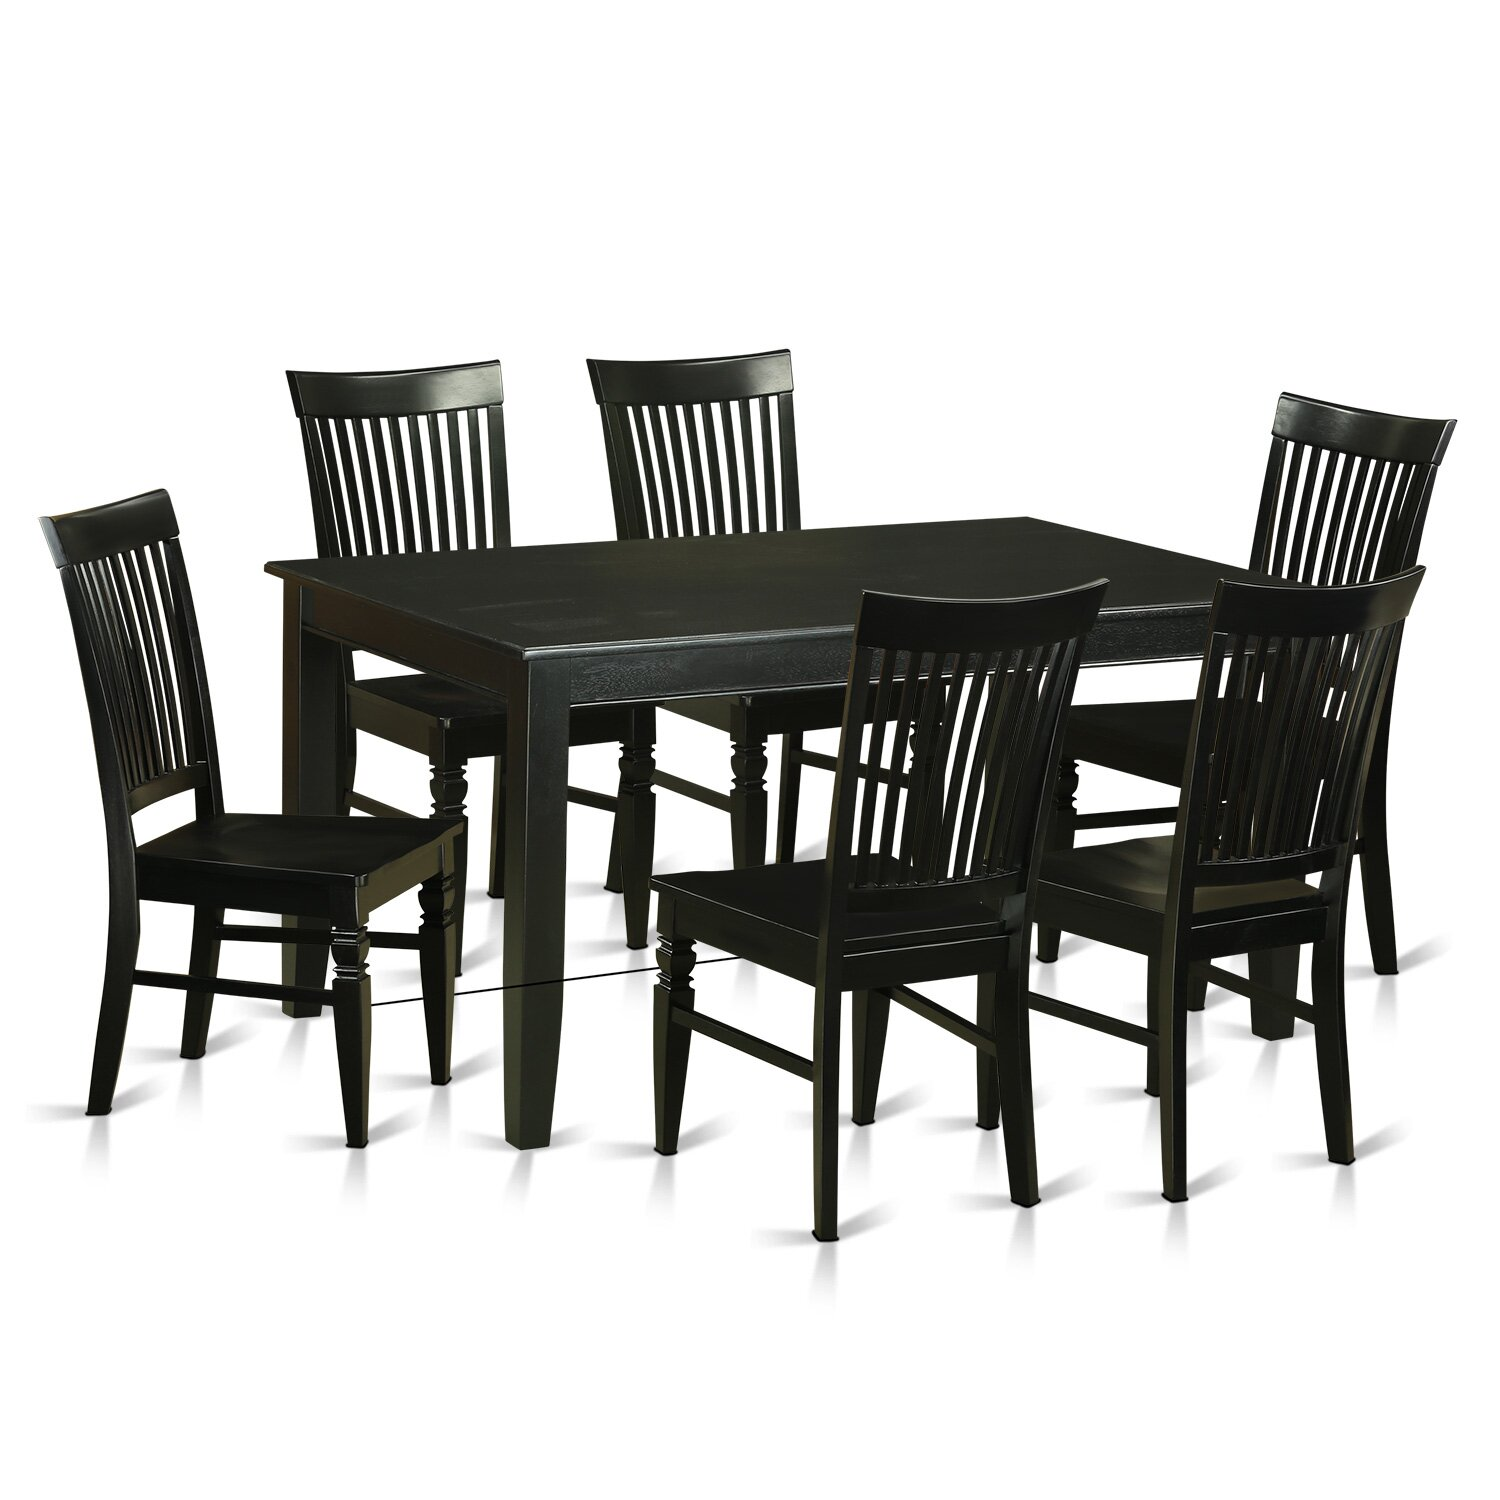 East west dudley 7 piece dining set wayfair for Kitchen and dining room chairs